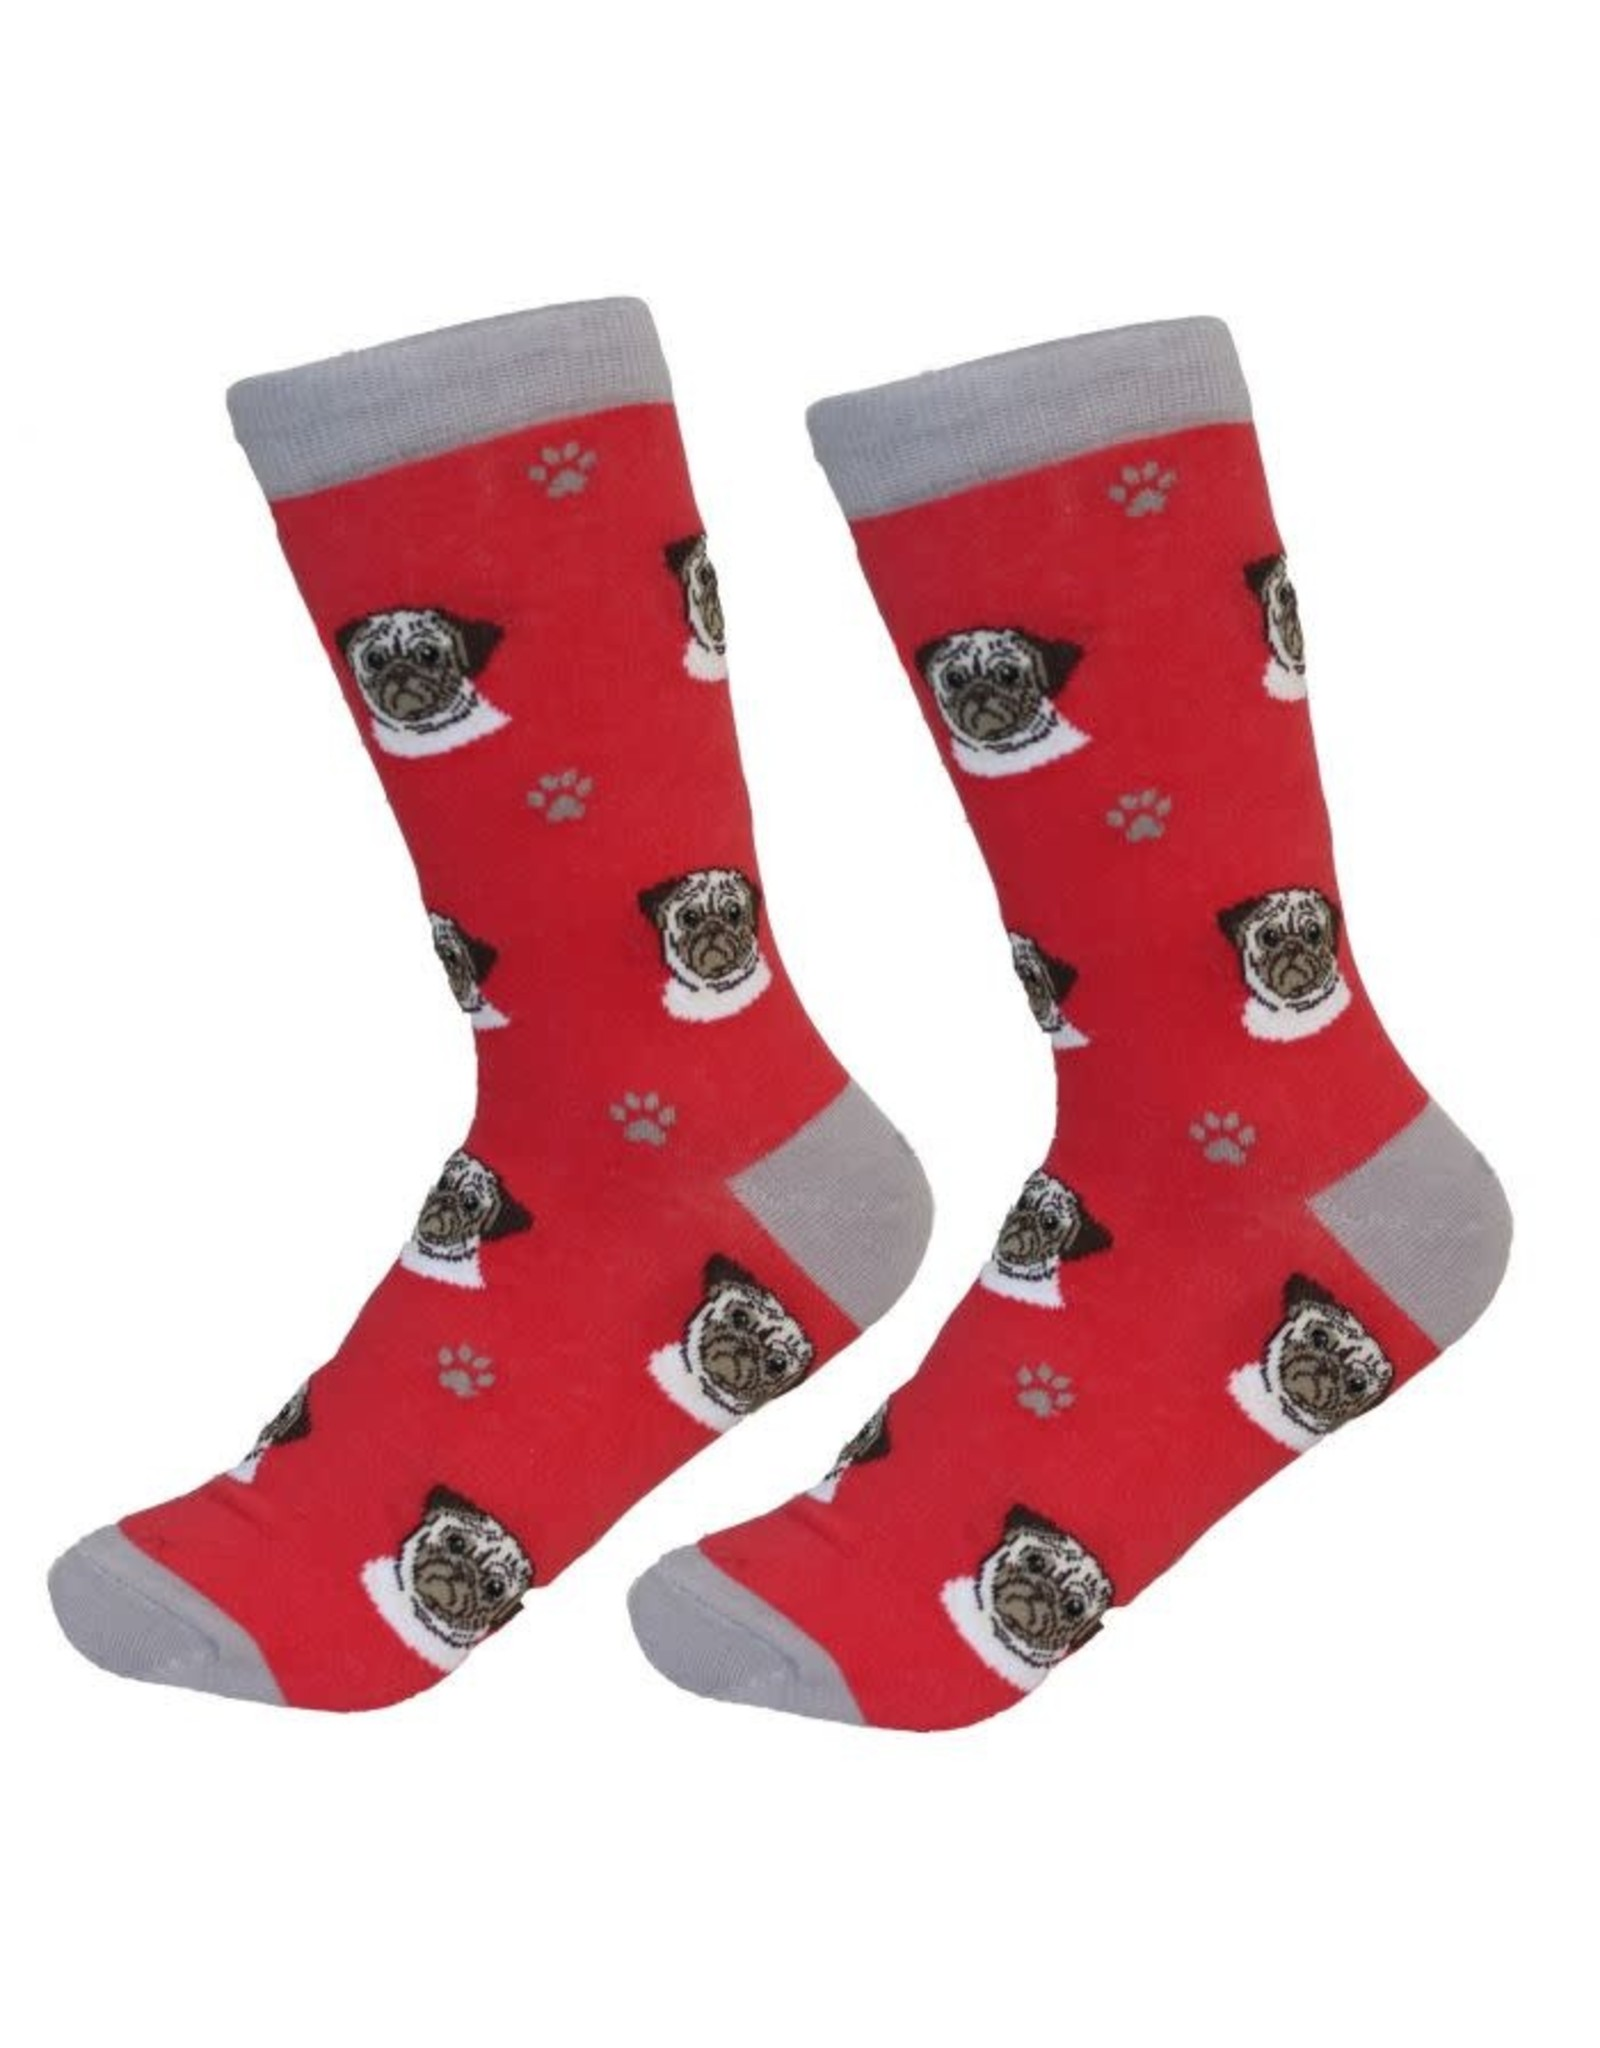 E and S PUG SOCKS